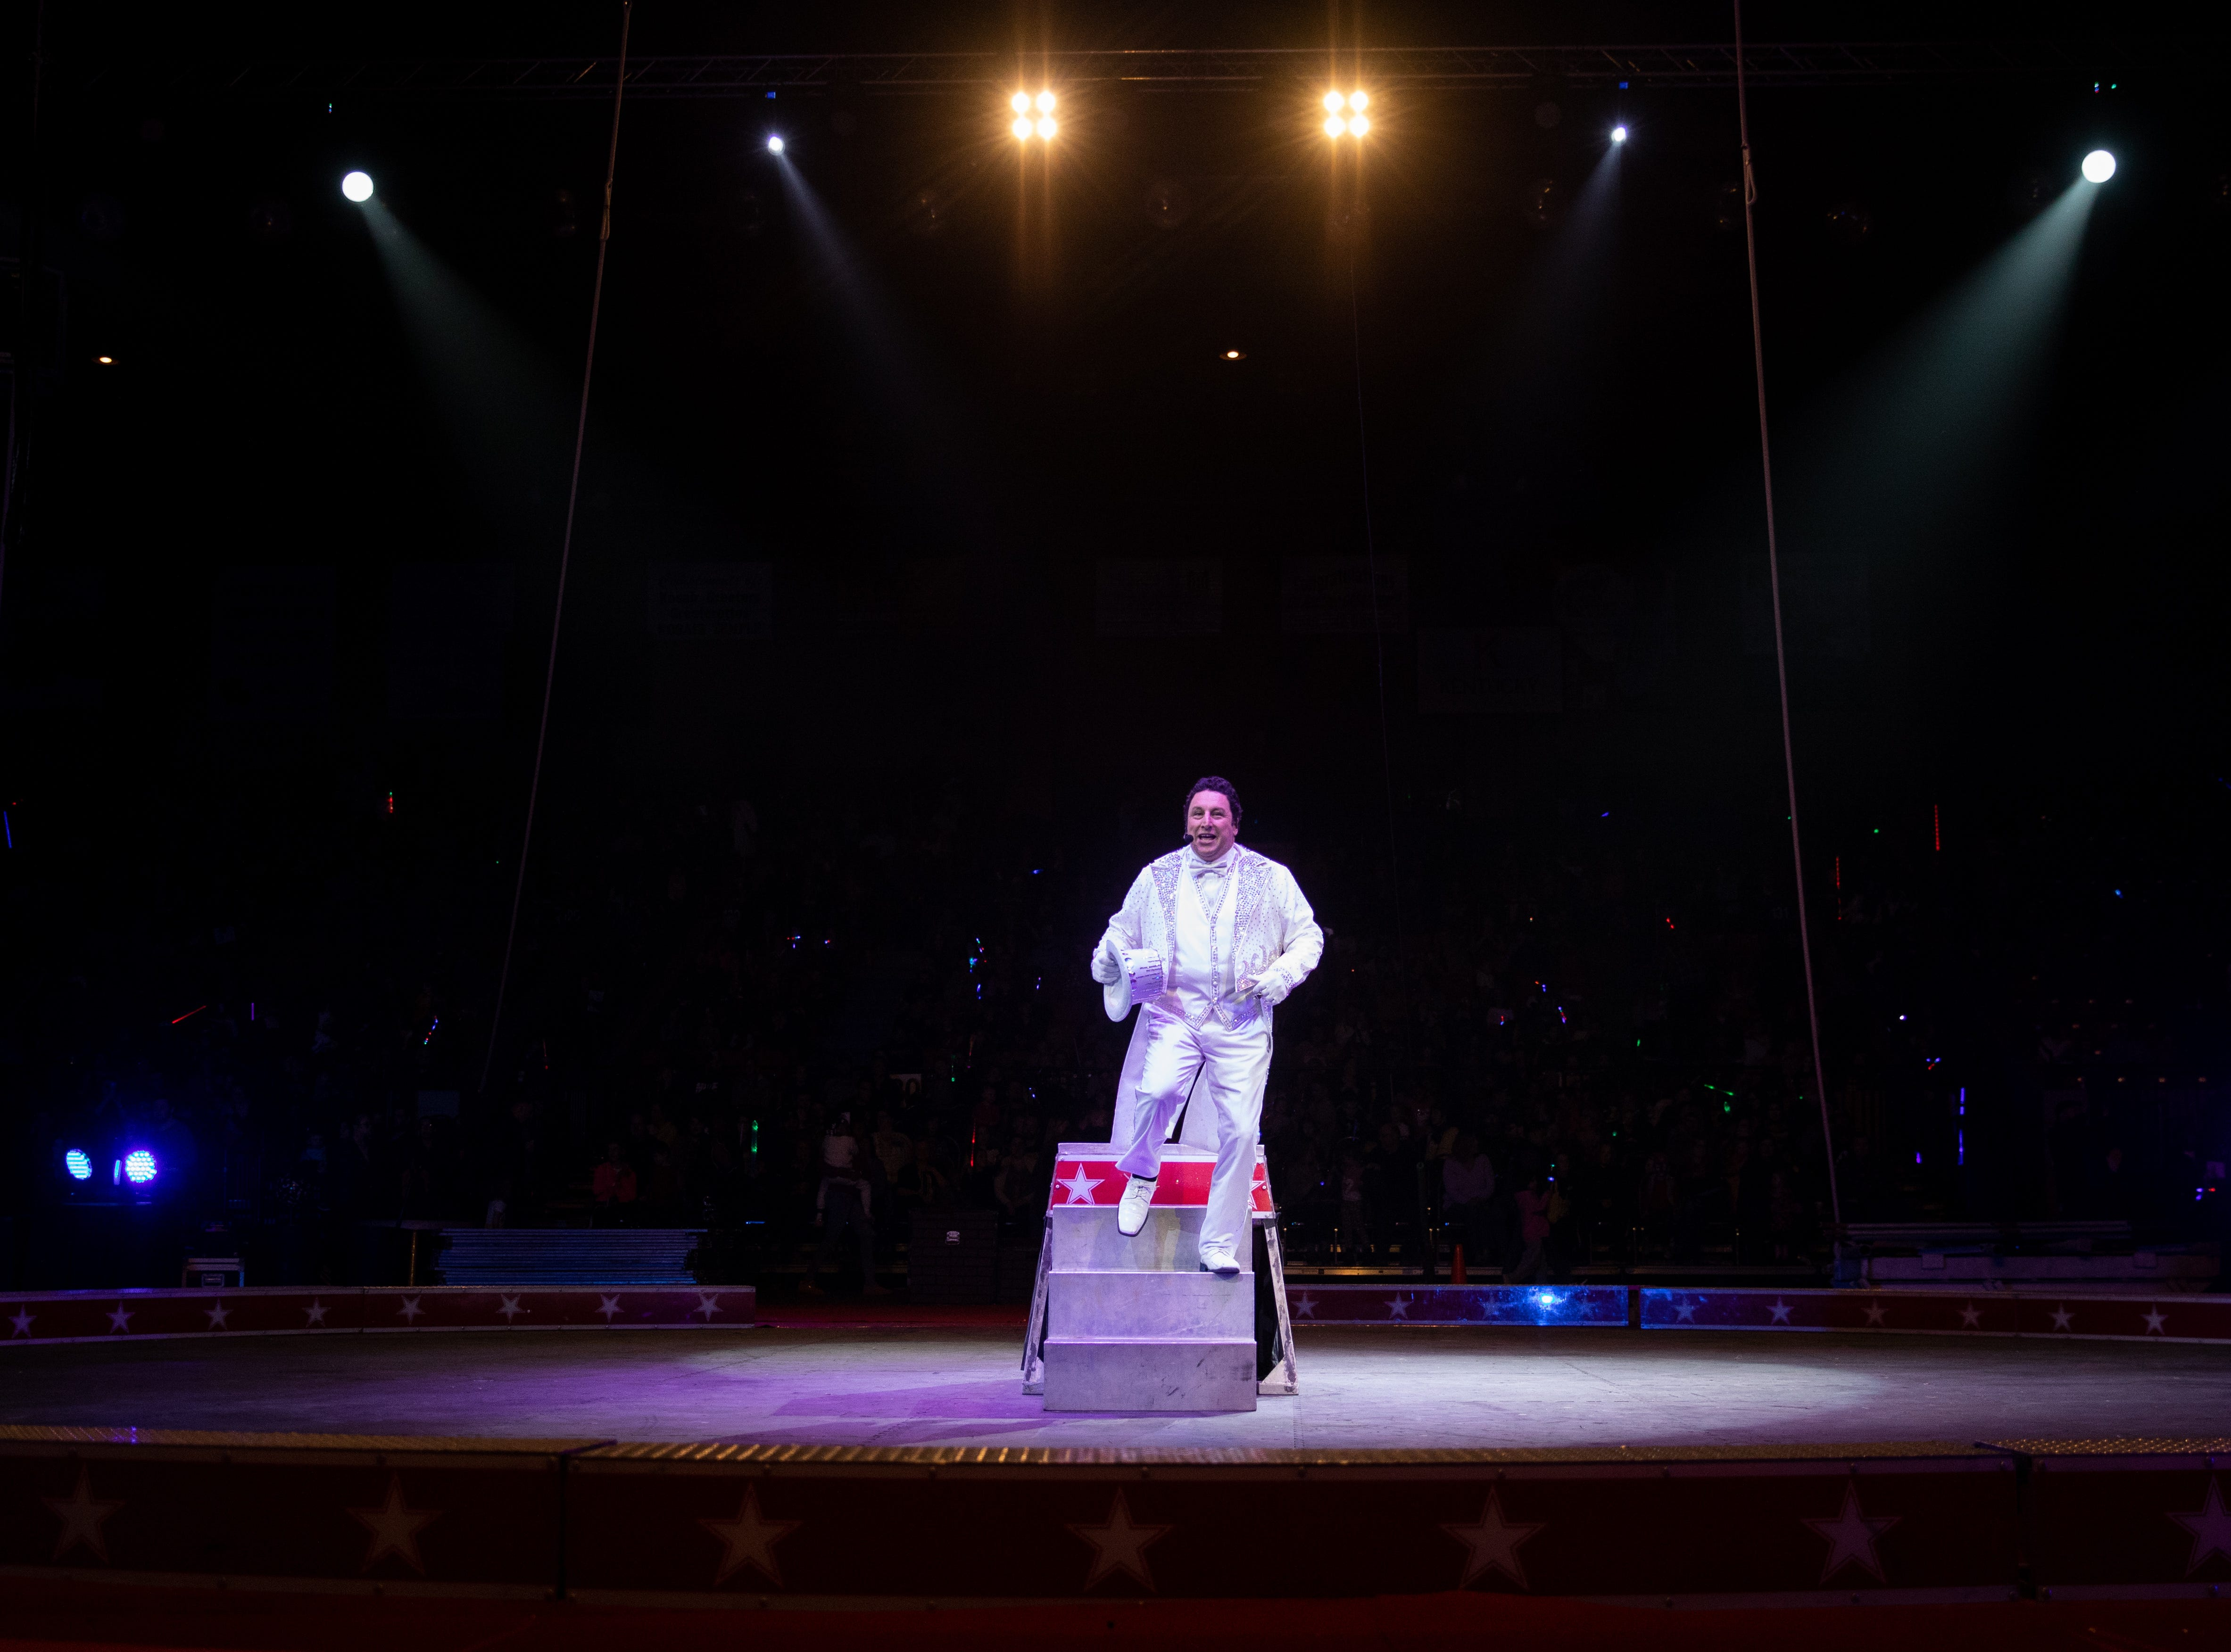 Ringmaster completes the show as he leaves the podium ending the Kosair Shrine Circus, Saturday, Feb. 9, 2019 in Louisville Ky.